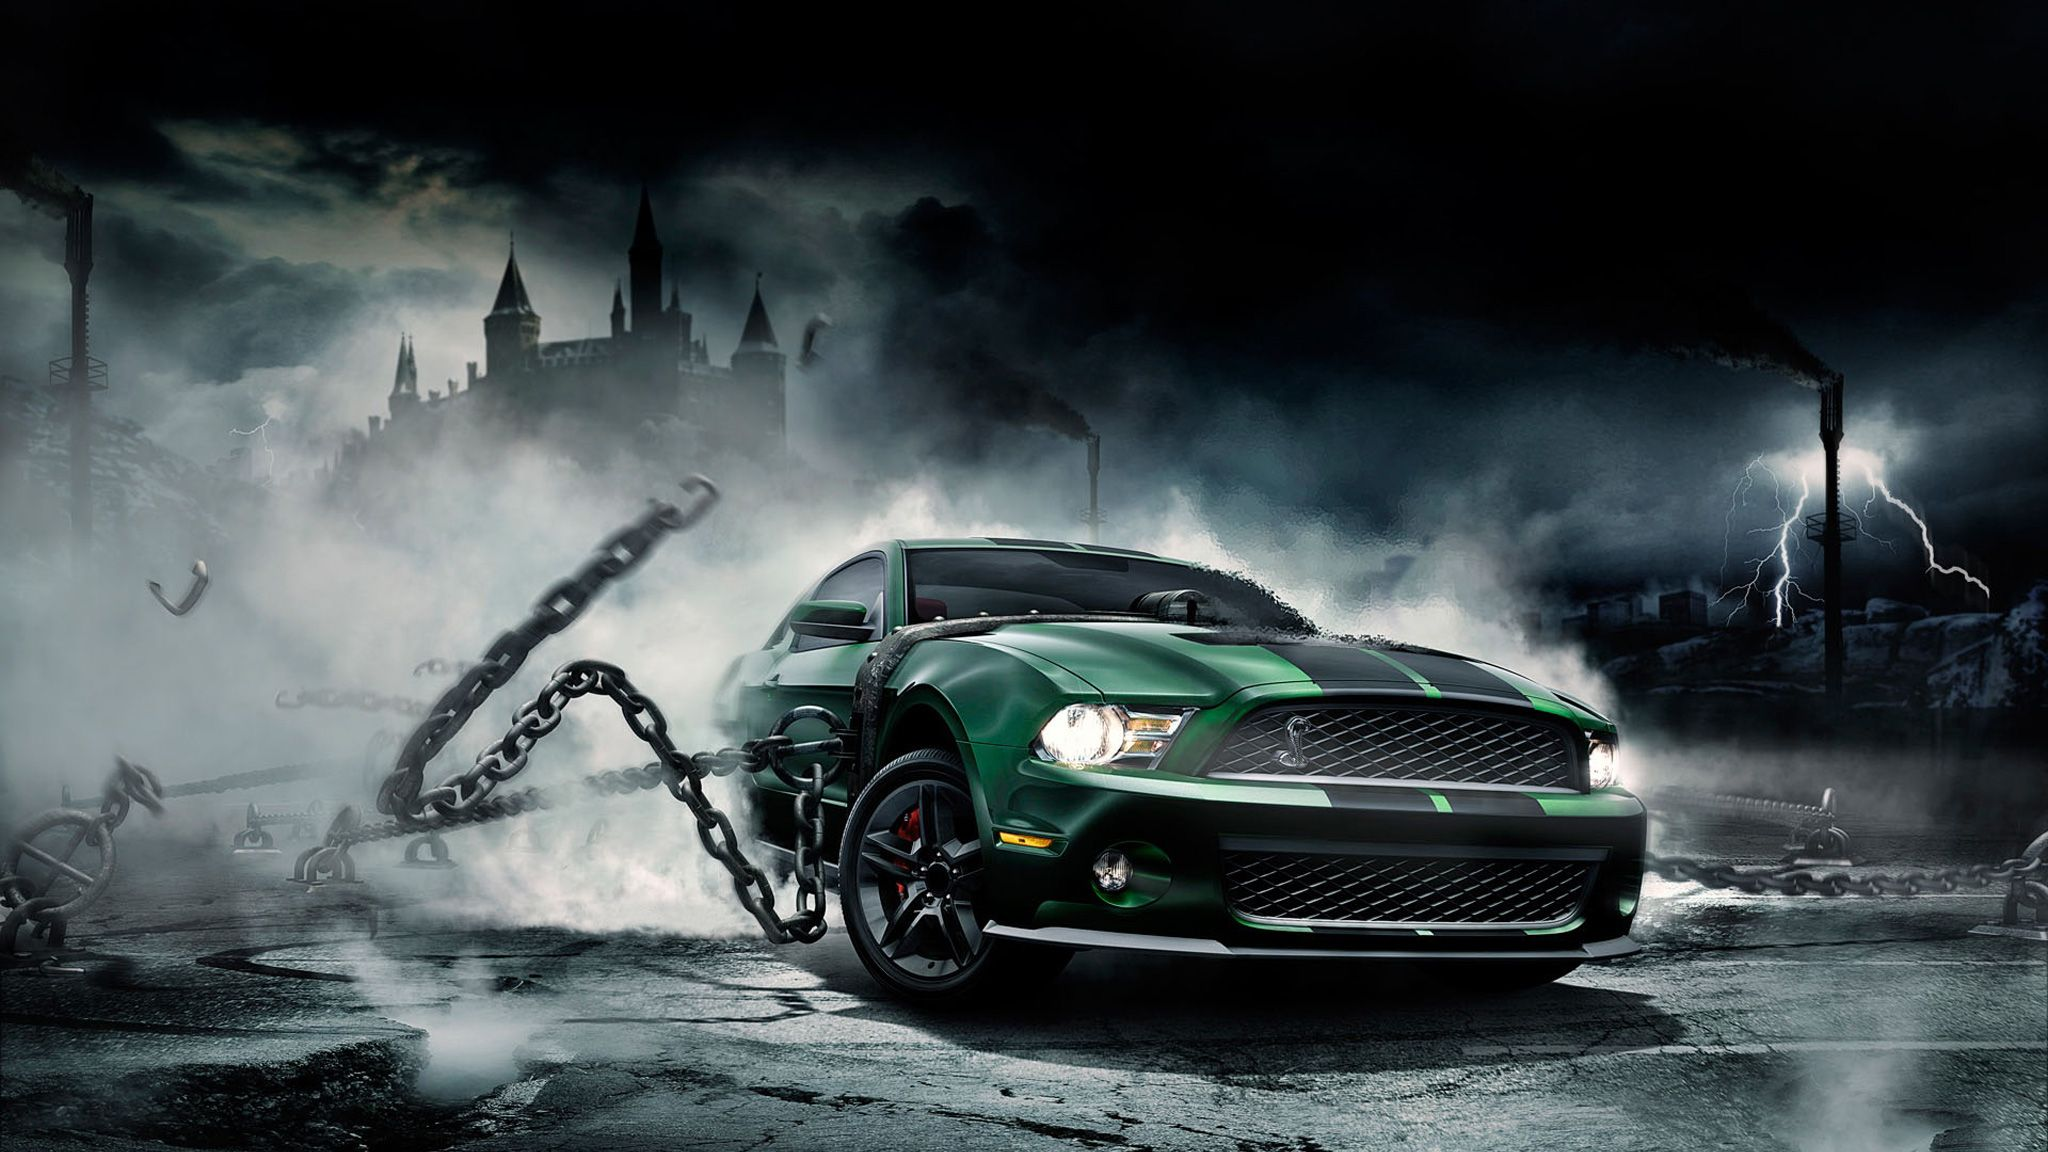 Fantasy Wallpaper And Backgrounds Powerful Car Fantasy